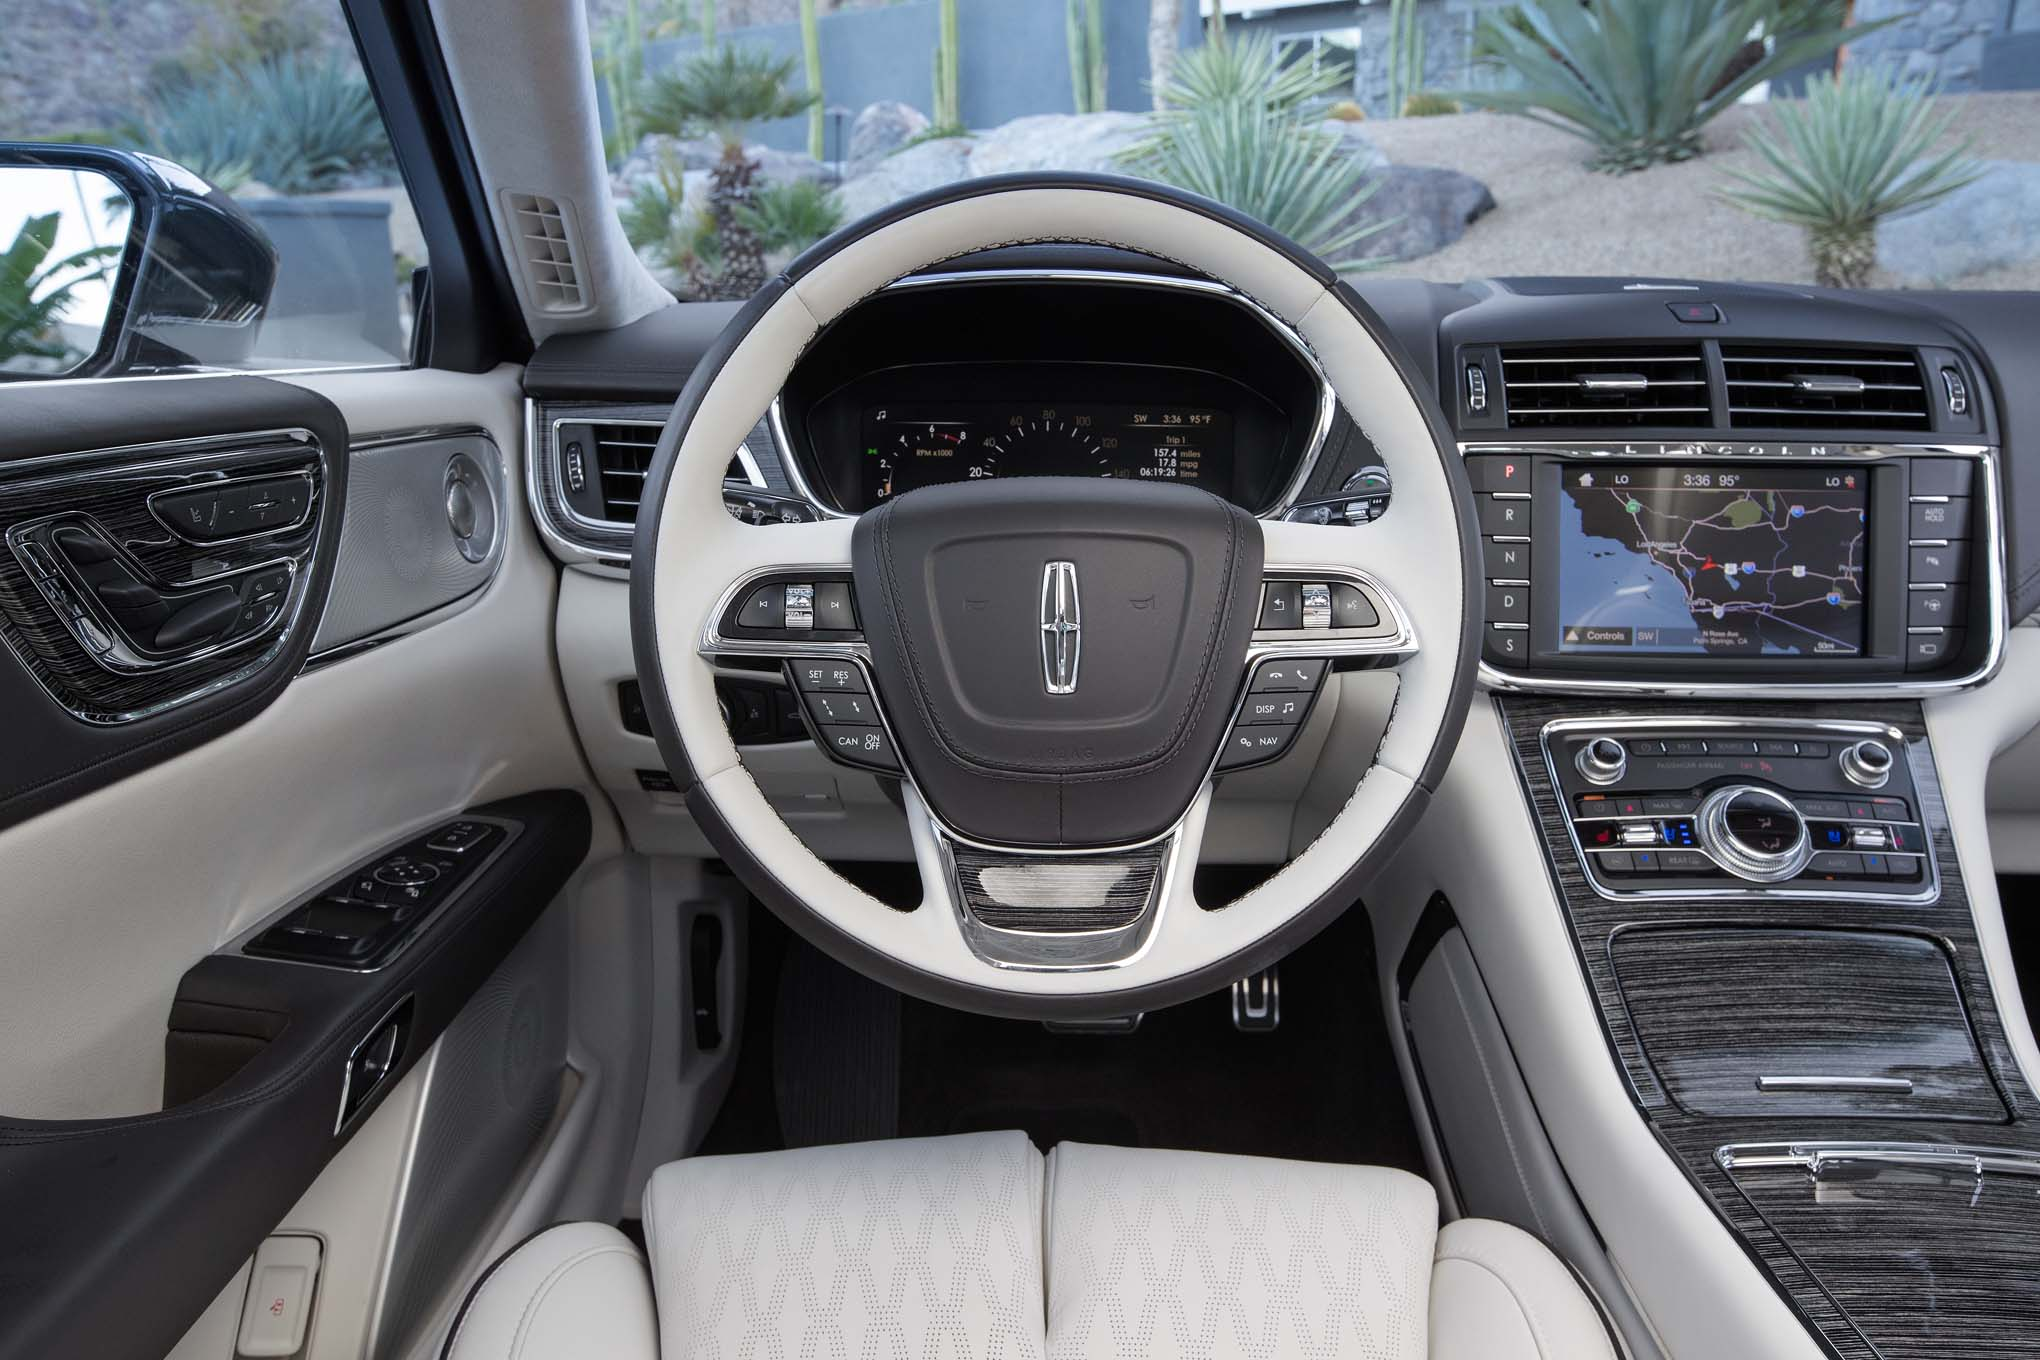 2017 Lincoln Continental Interior View Steering Wheel (Photo 33 of 41)